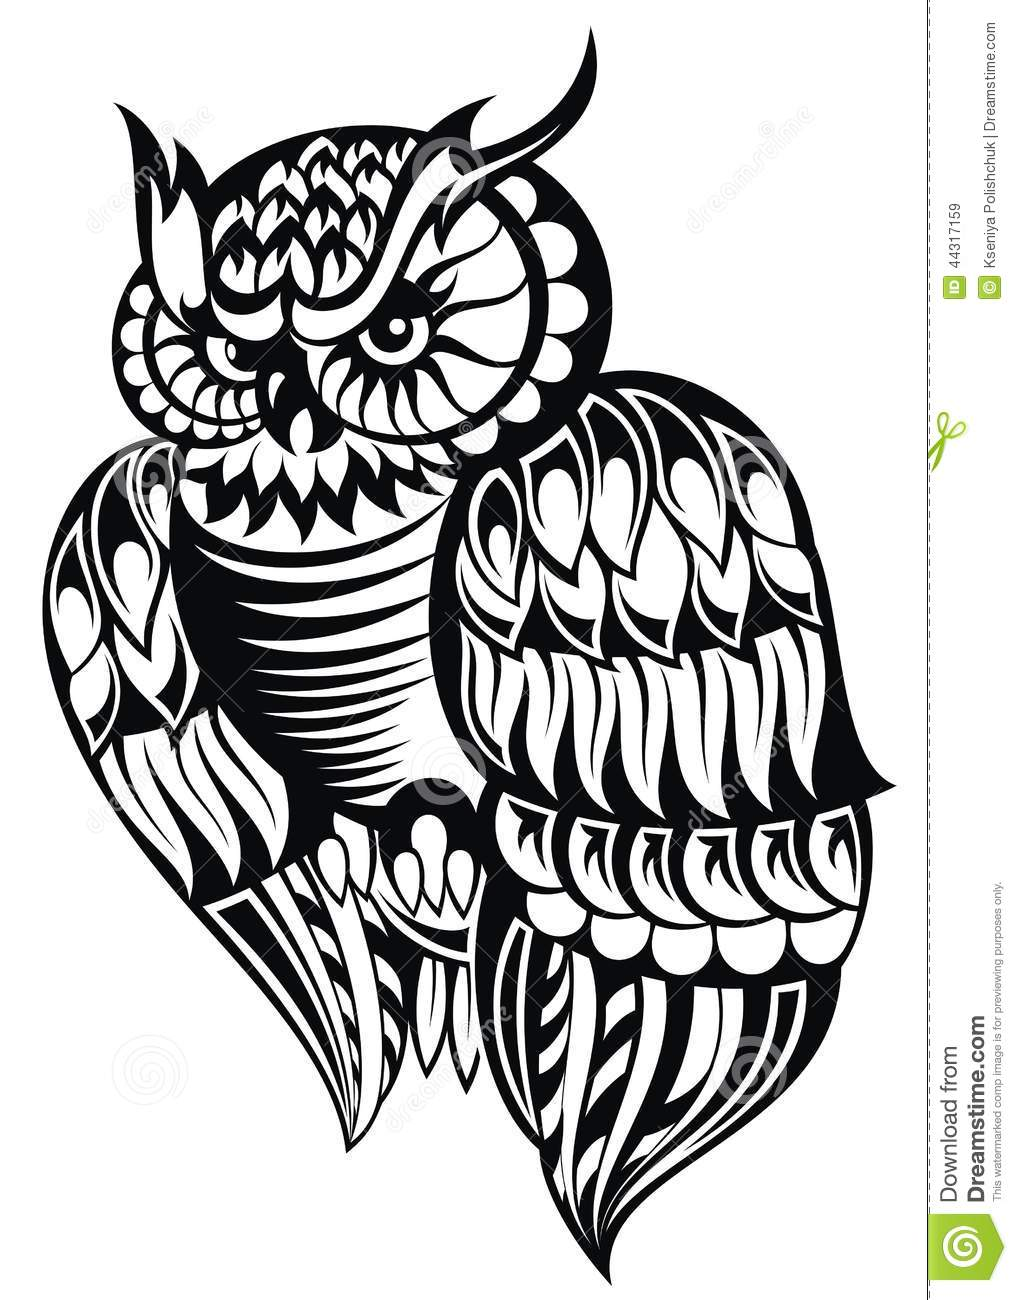 Owl Tattoo Design Stock Vector Illustration Of Design 44317159